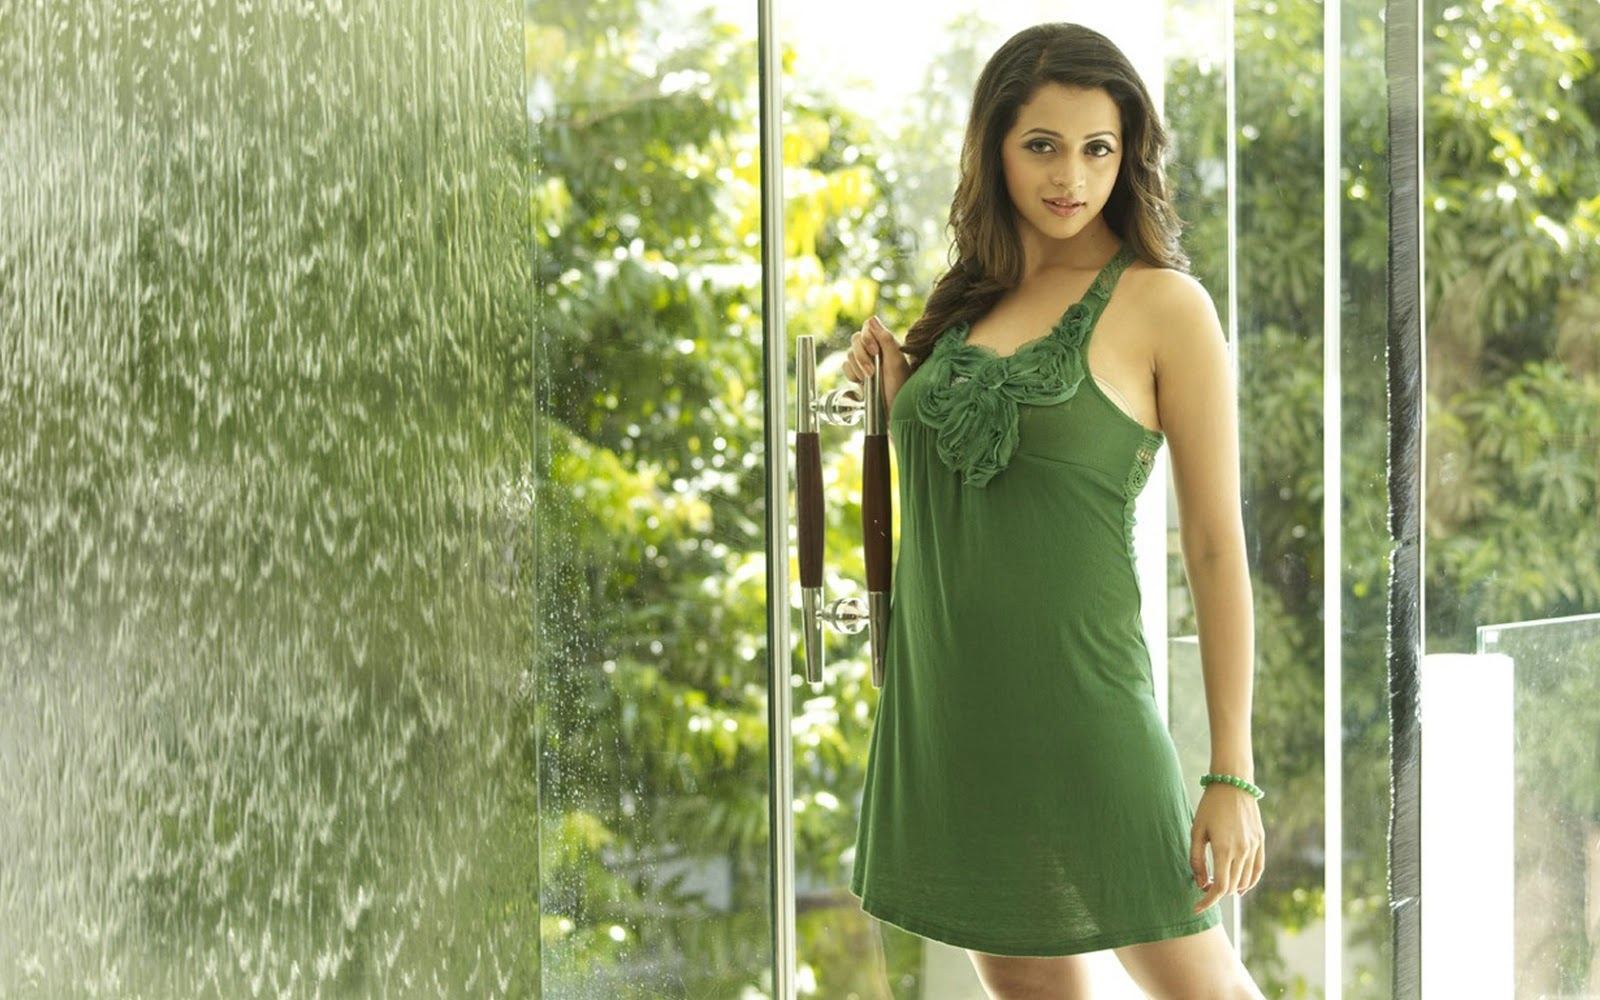 Bhavana HD wallpaper for download